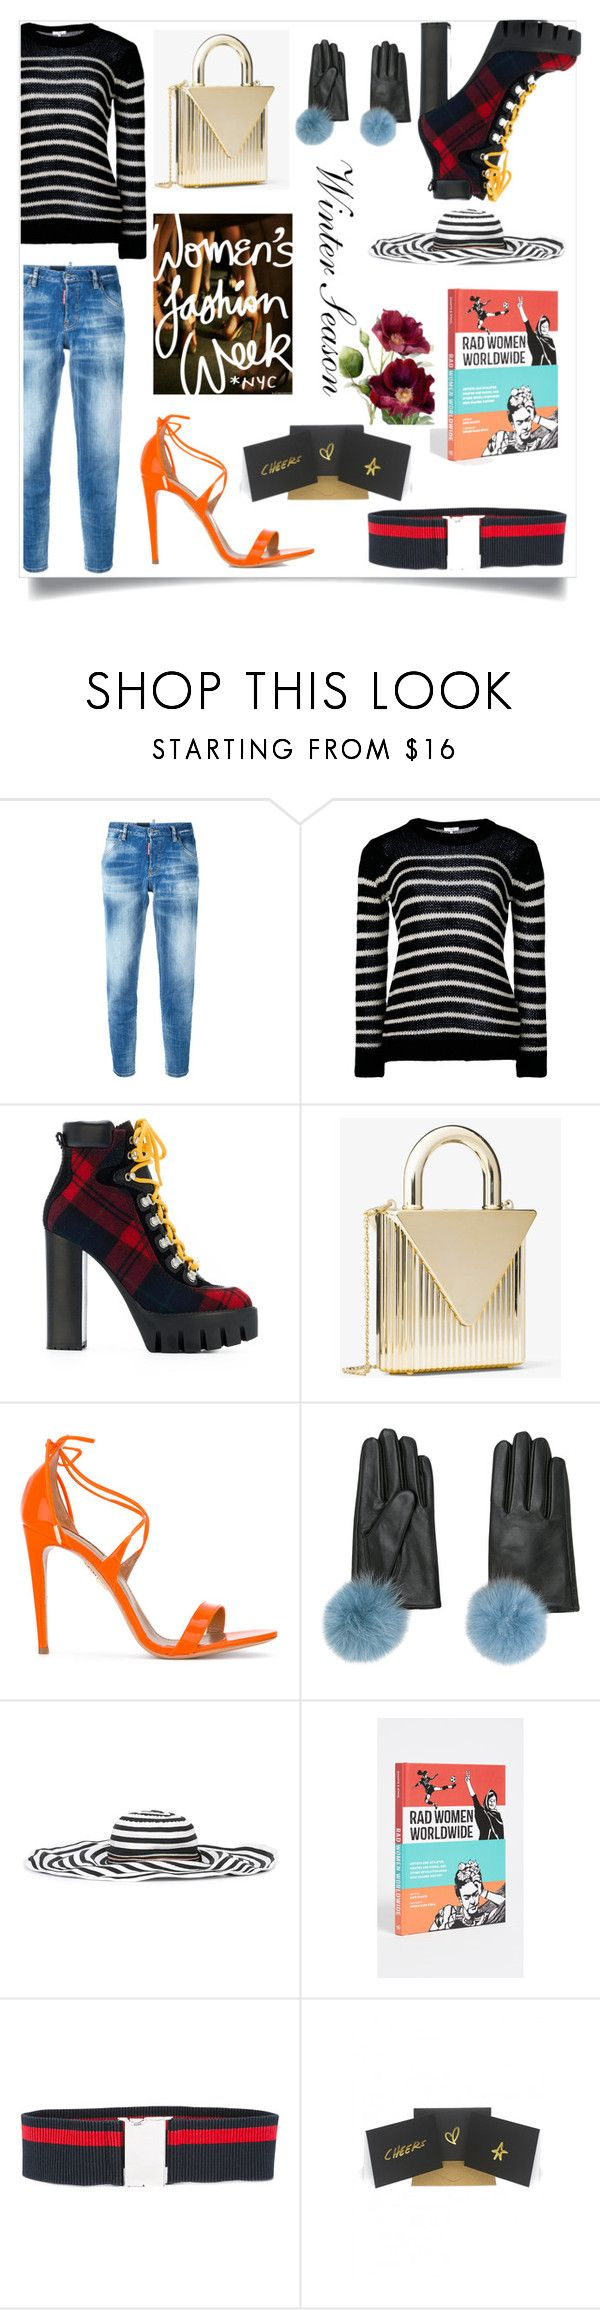 """Winter beauty"" by gloriaruth-807 ❤ liked on Polyvore featuring Dsquared2, IRO, Aquazzura, Missoni and Terrapin Stationers"